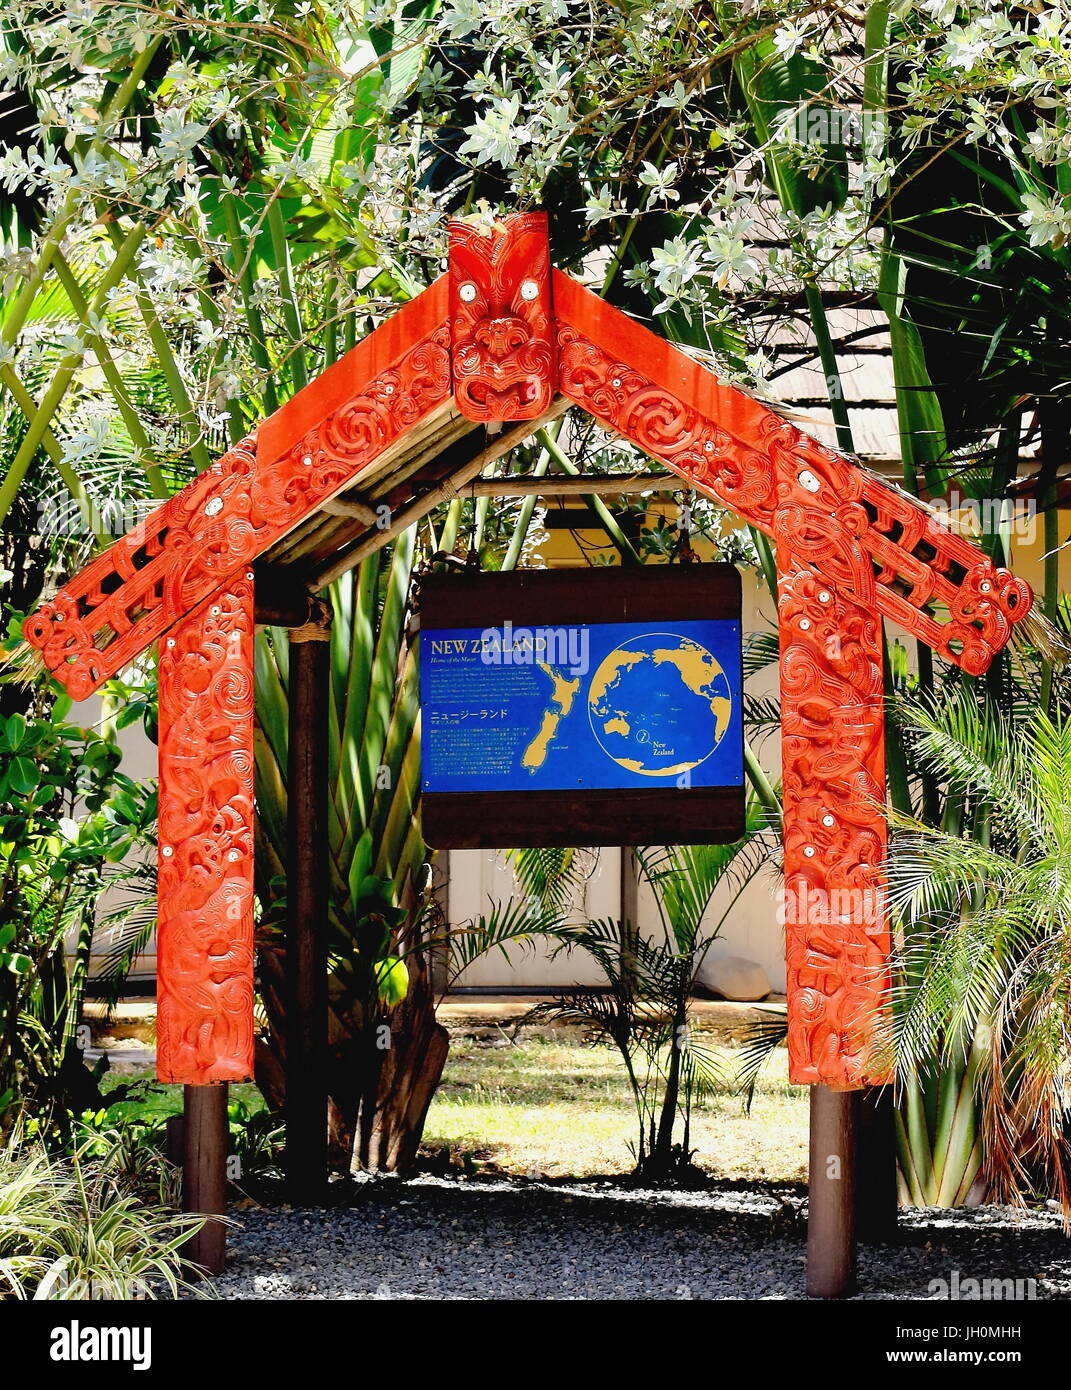 Honolulu, Hawaii - May 27, 2016:Entrance to the New Zealand (Aotearoa) Village at the Polynesian Cultural Center Stock Photo